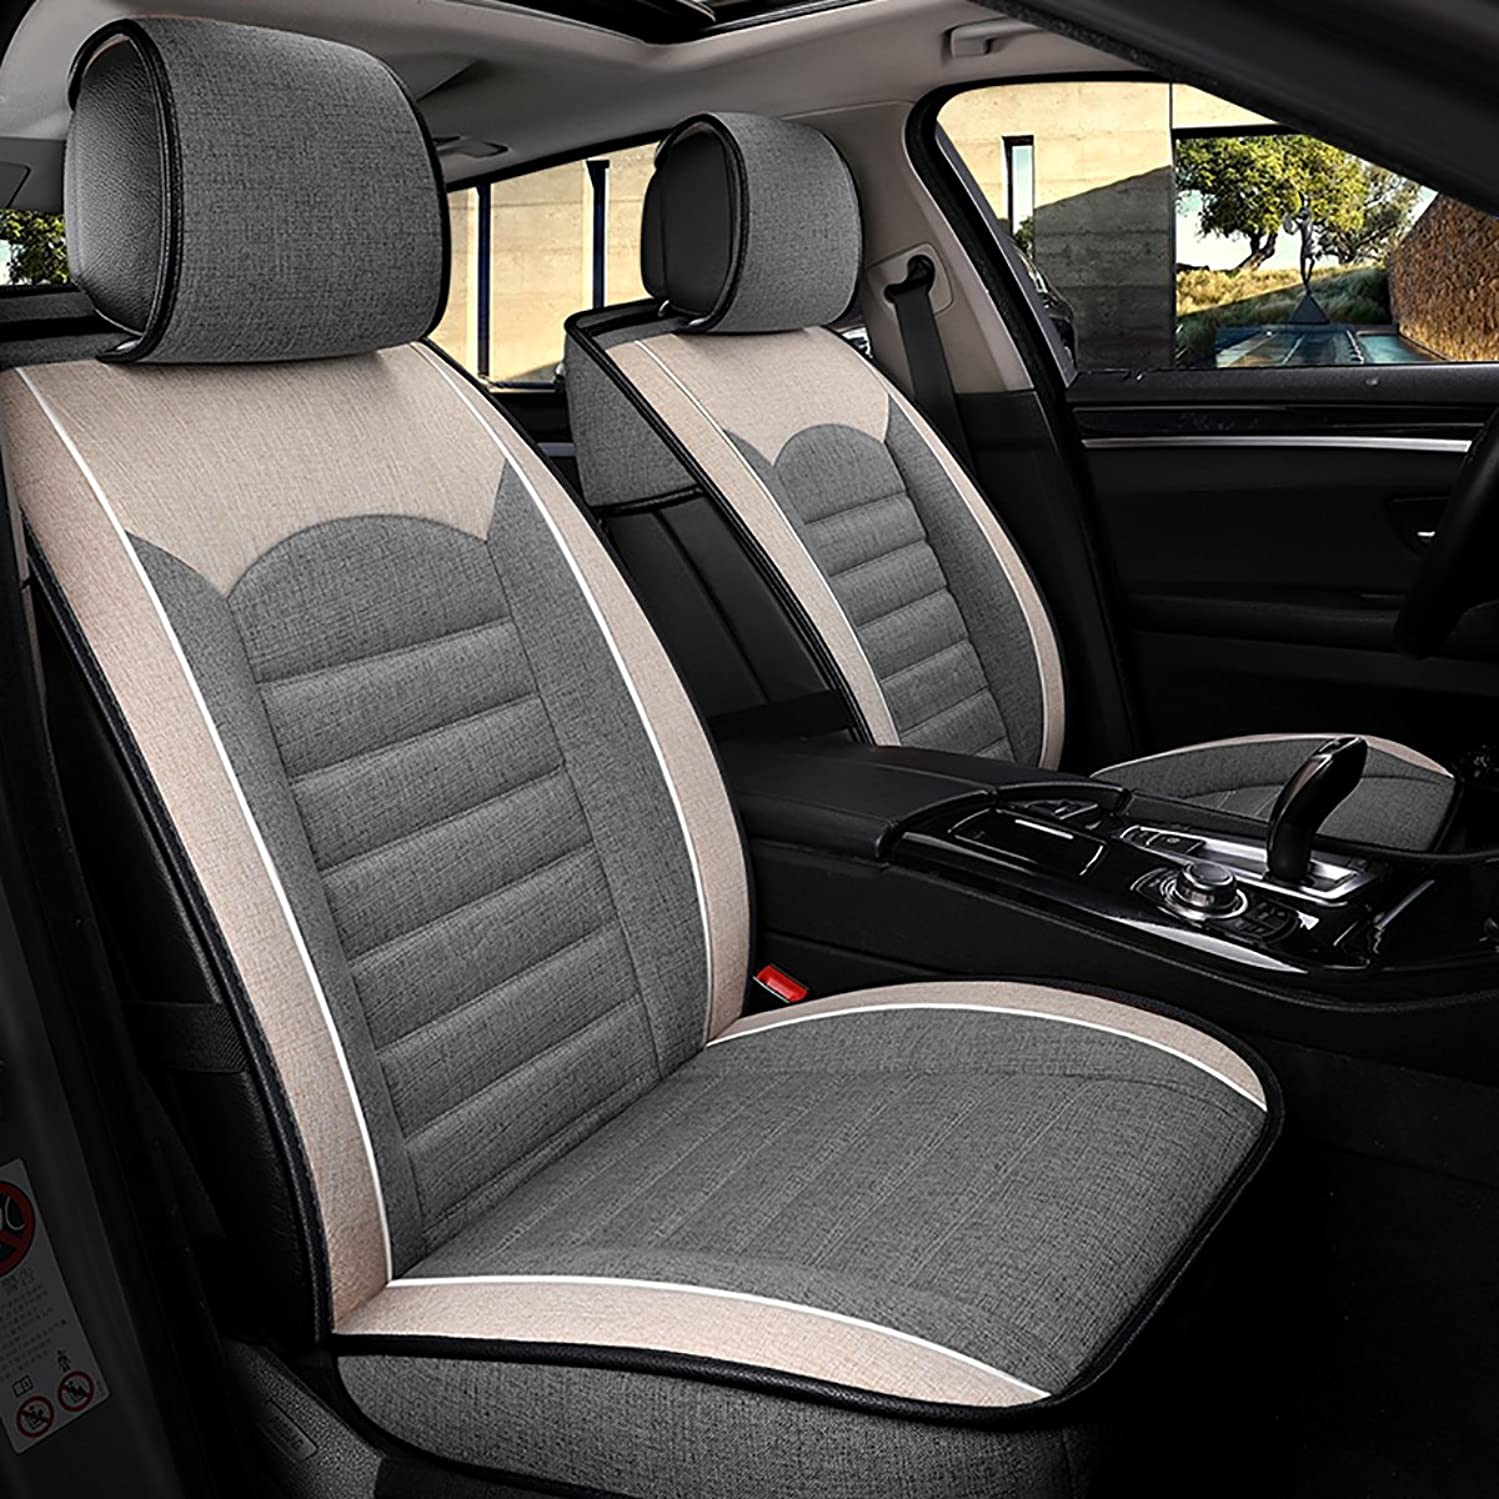 Empire Sport Style Linen/Flax Super Breathable Car Seat Covers 10 pcs Set - Adjustable Seat Covers for Audi Jeep Ford Mercedes-Benz and 98% Other Types of 5 Seats Cars